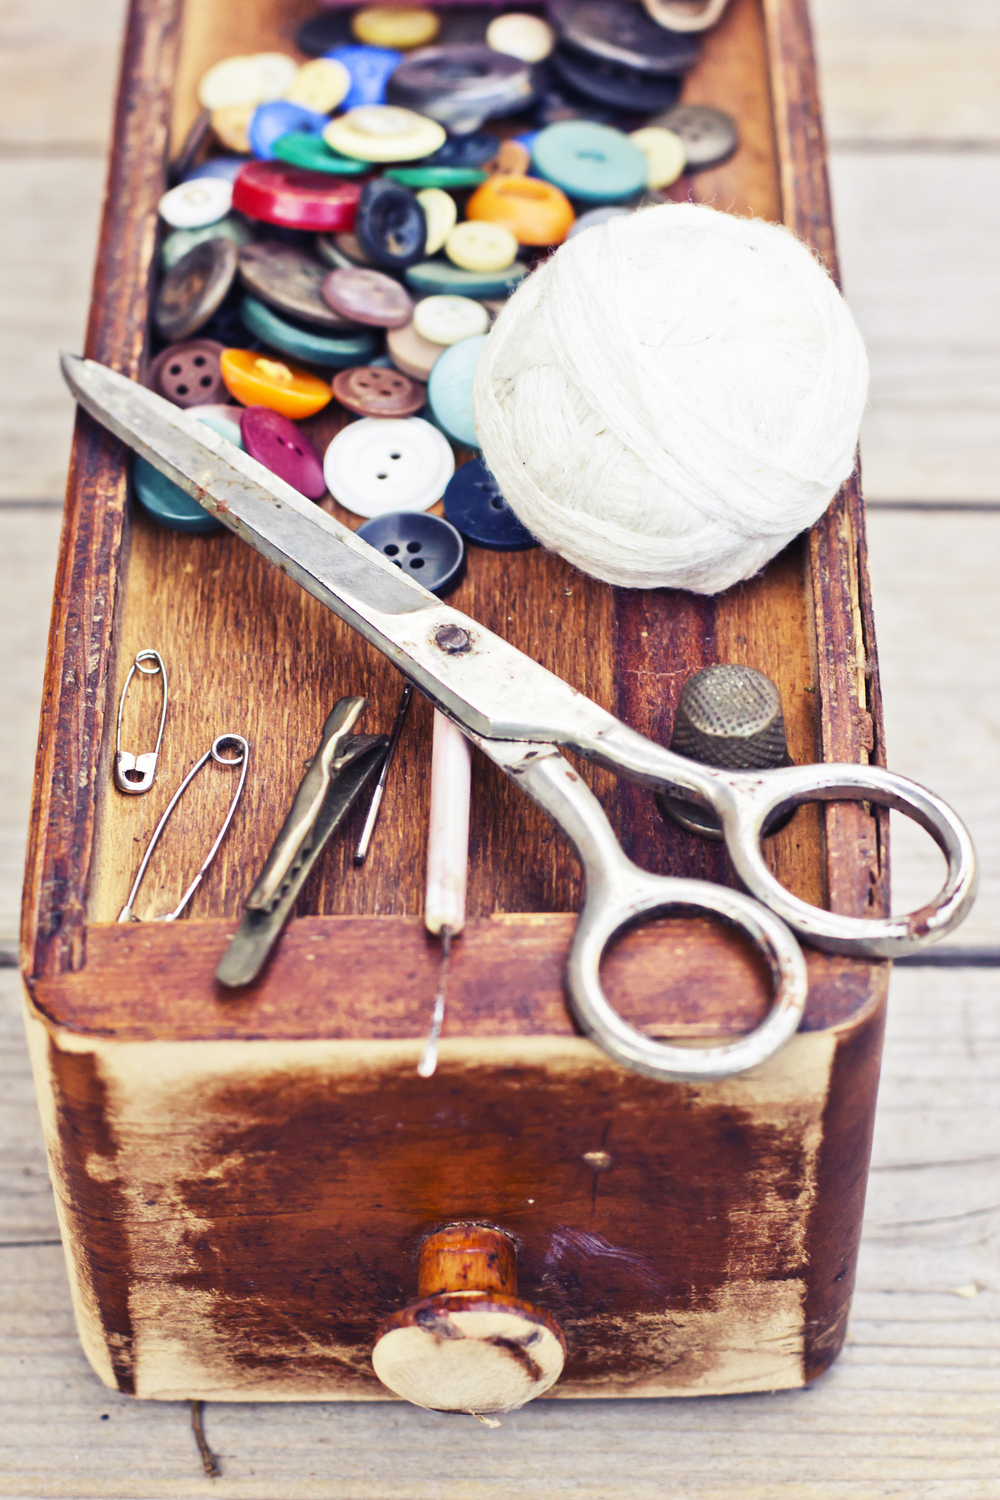 Should You Sell on Etsy, or Build Your Own E-commerce Site?